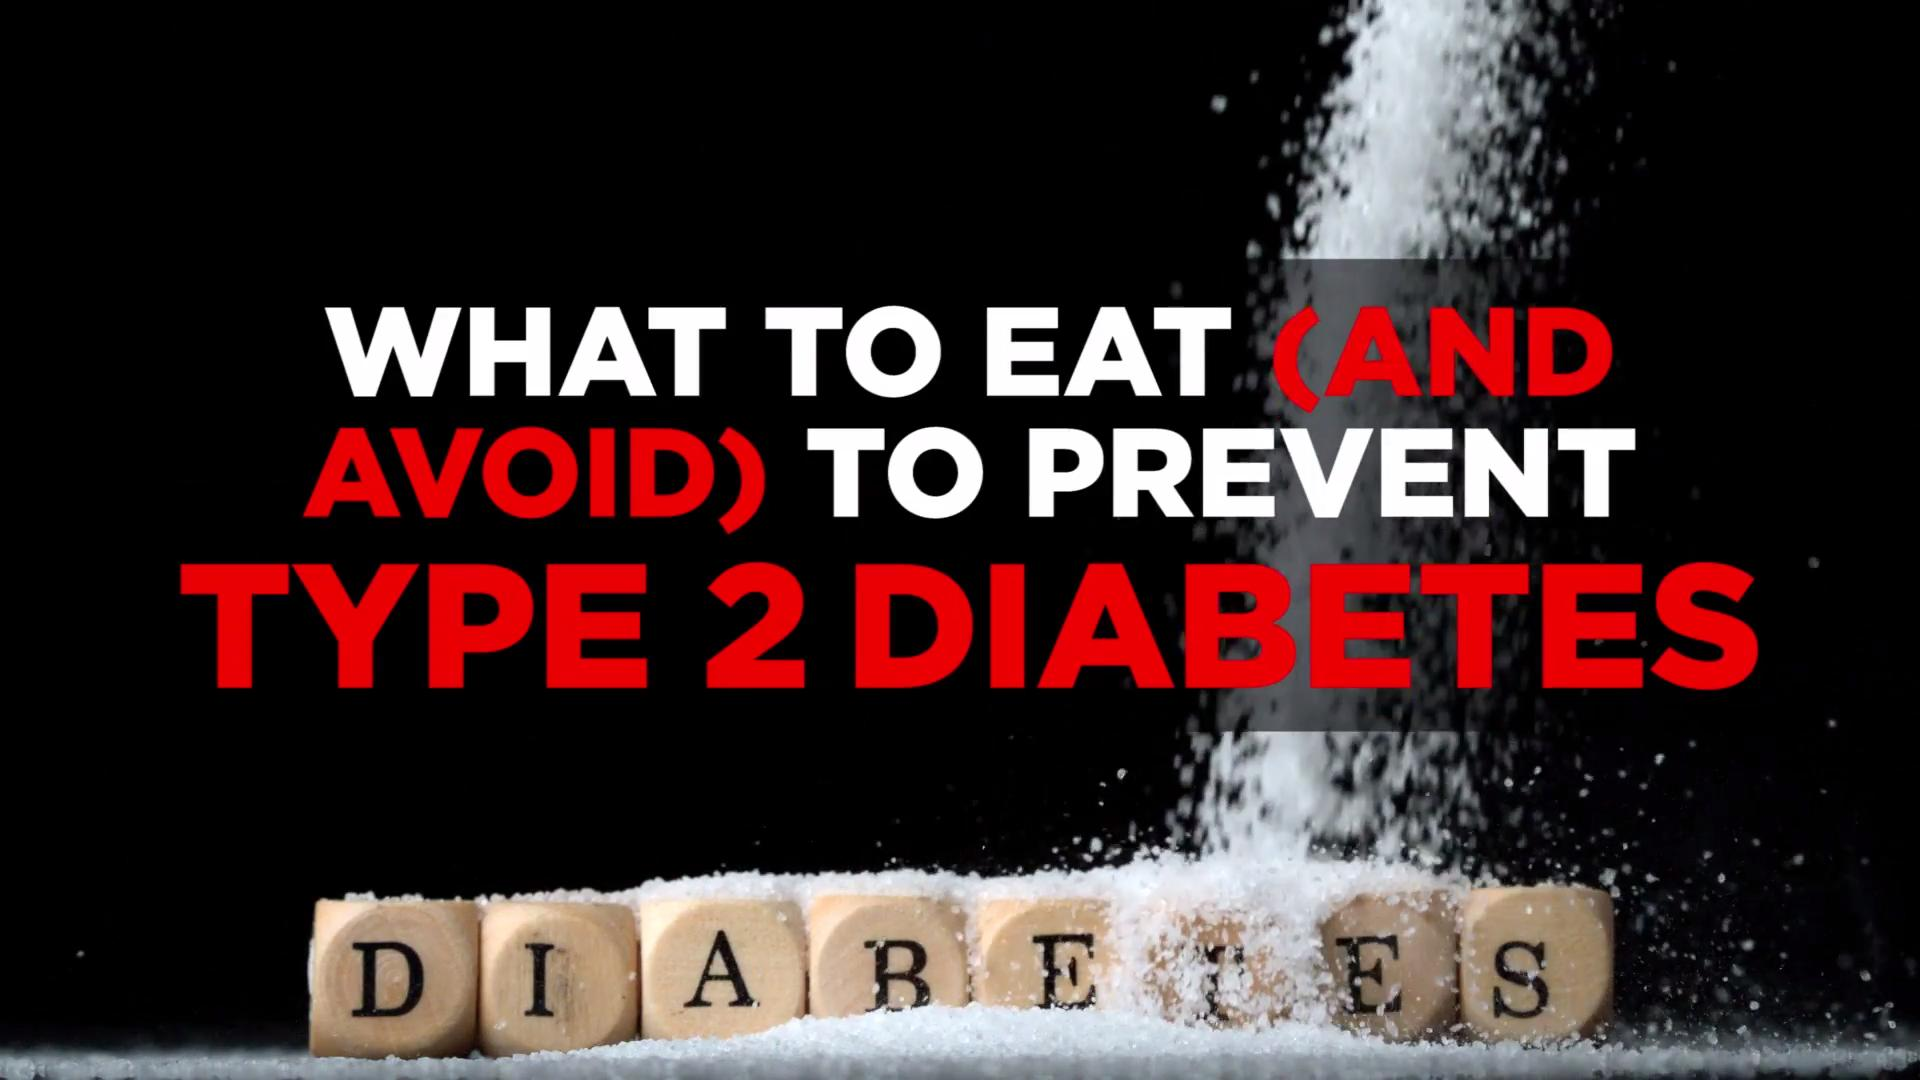 10 Foods Diabetics Should Eat Daily - Cooking Light - Health